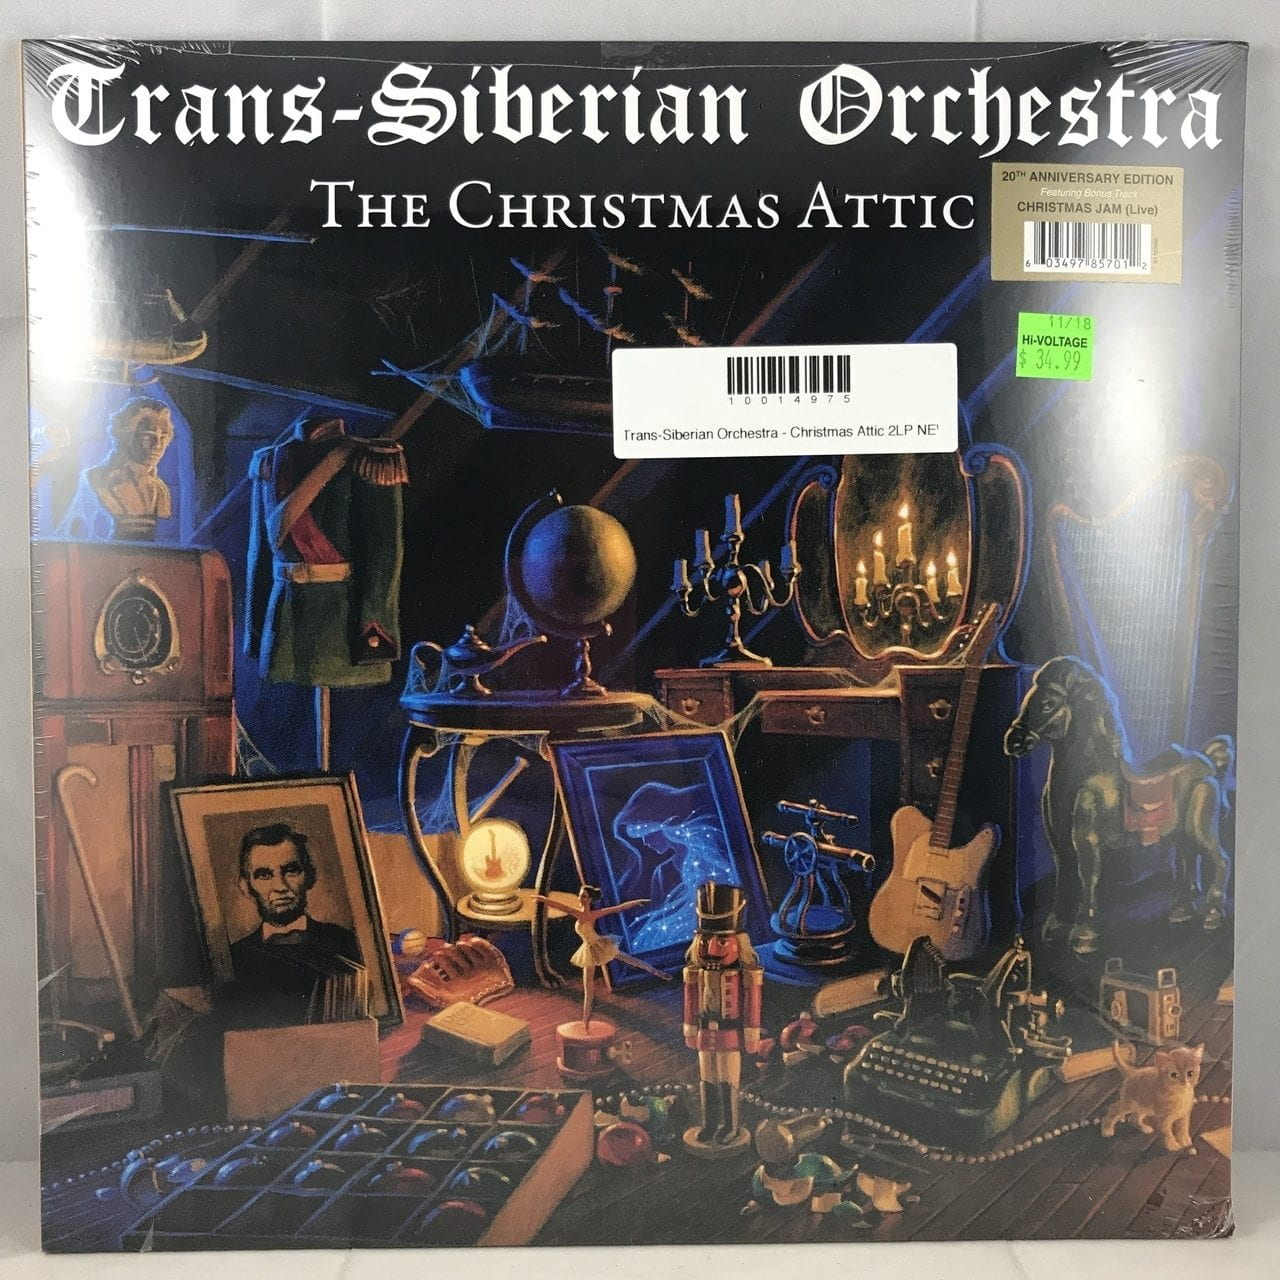 Trans-Siberian Orchestra - The Christmas Attic (20th Anniversary Edition) [2LP] - Urban Vinyl | Records, Headphones, and more.